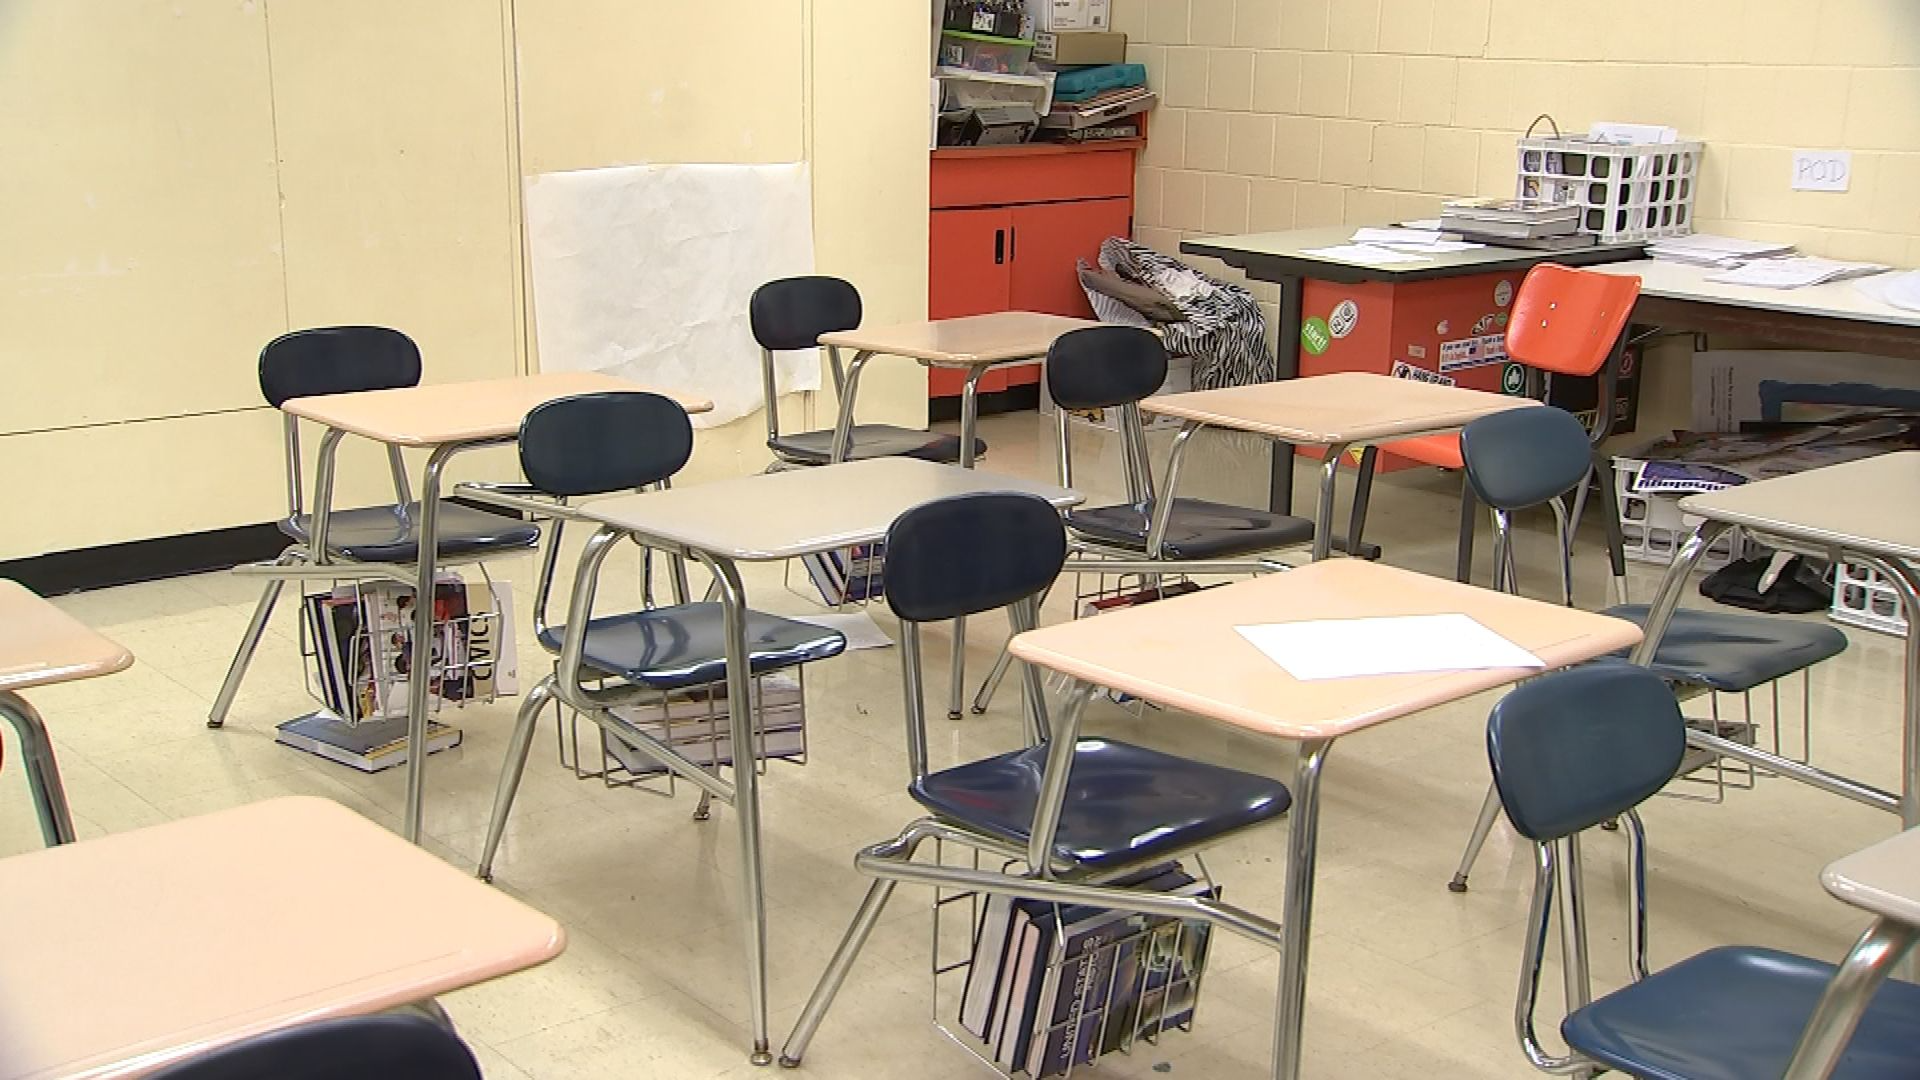 COUNTY-BY-COUNTY: Local school districts' plans for returning to classrooms